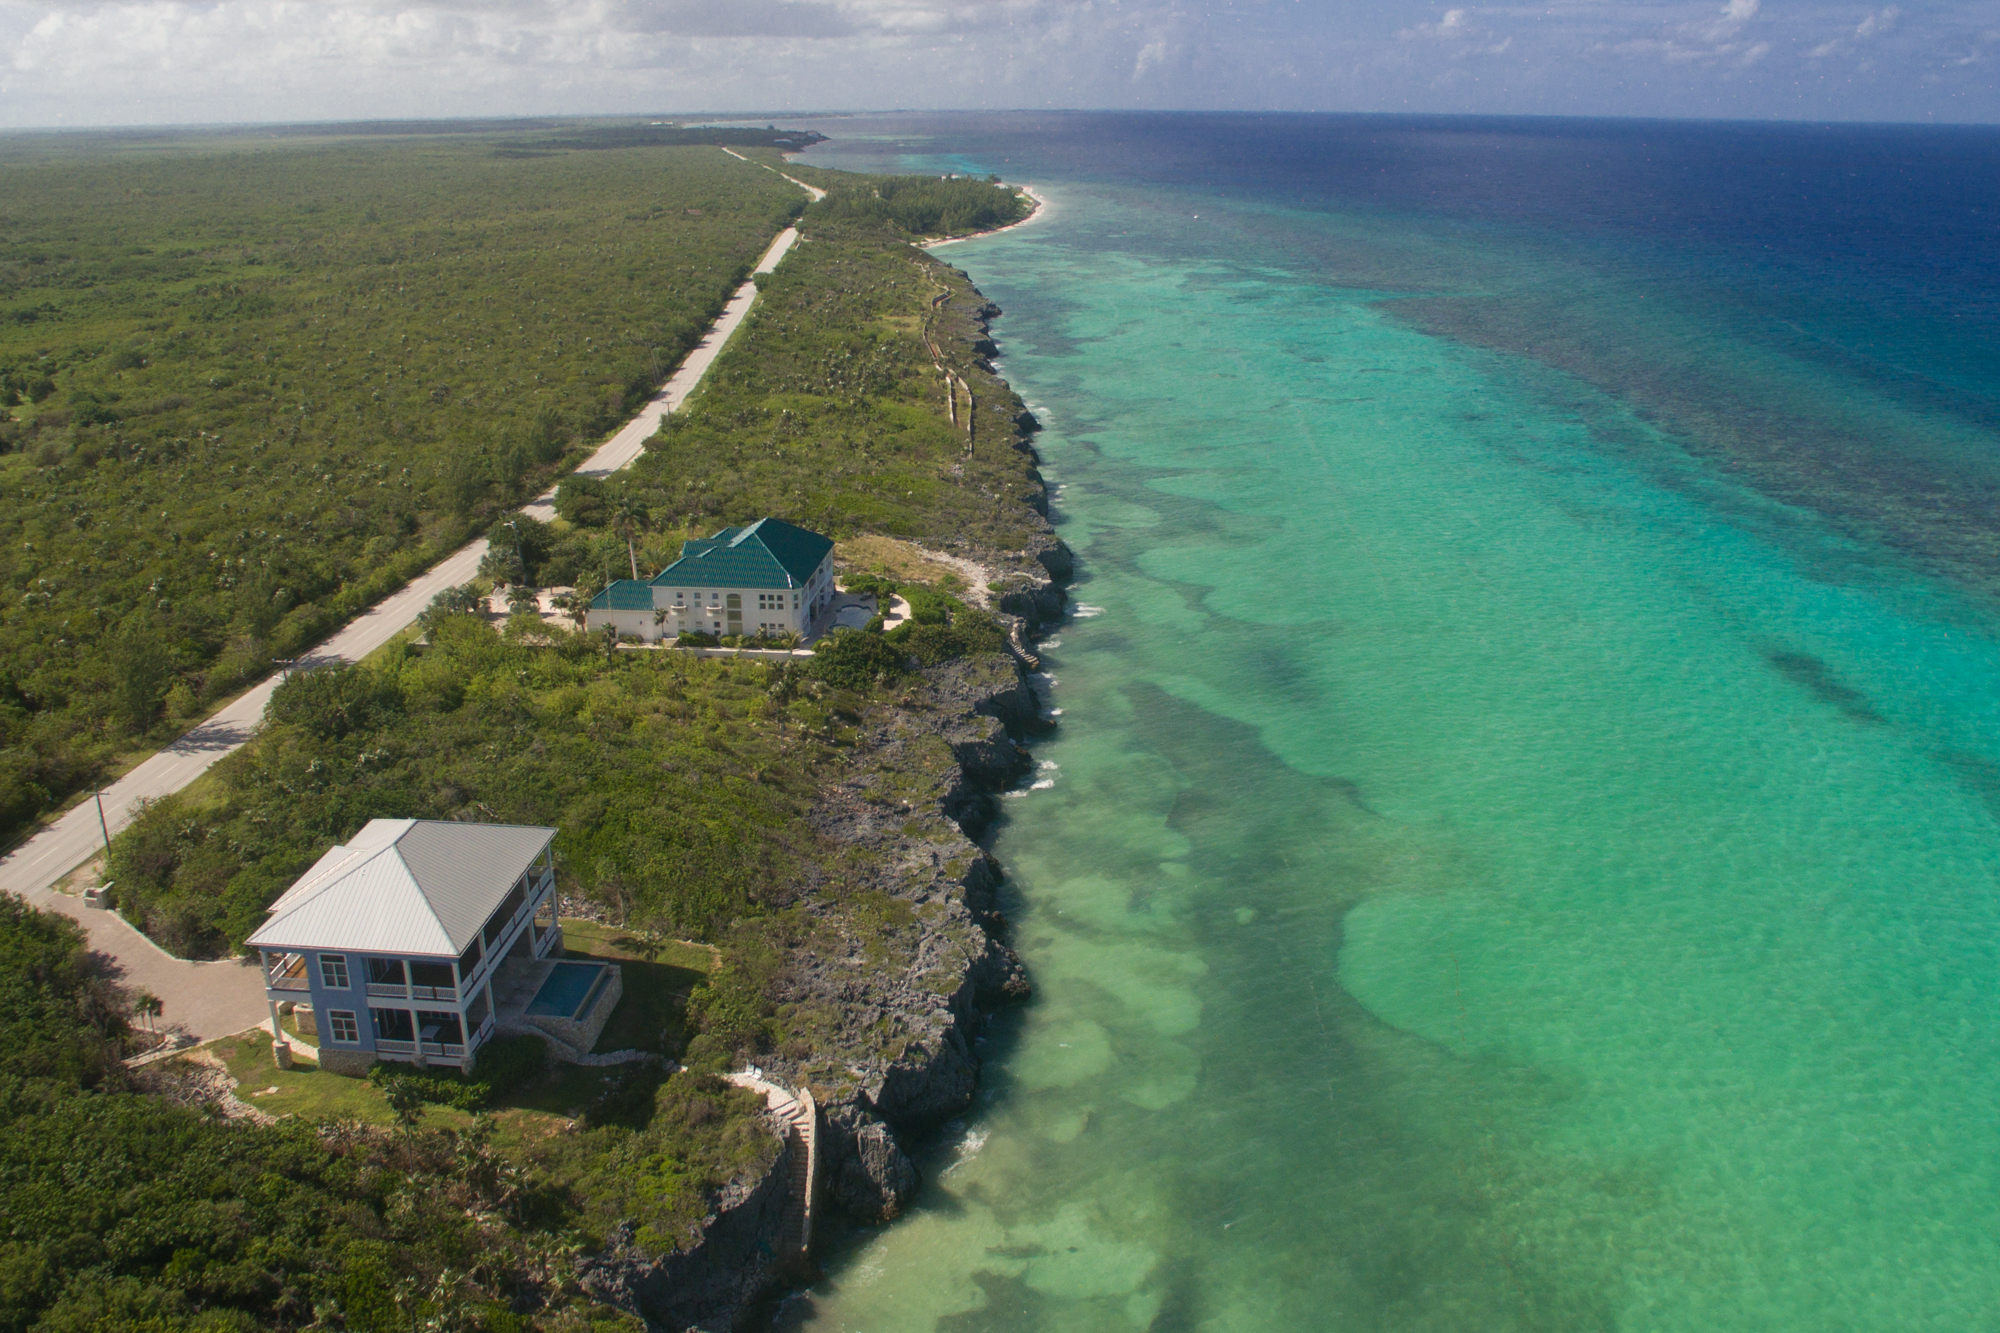 Single Family Home for Sale at Southern Star Southern Star Queen's Hwy East End, KY1 Cayman Islands